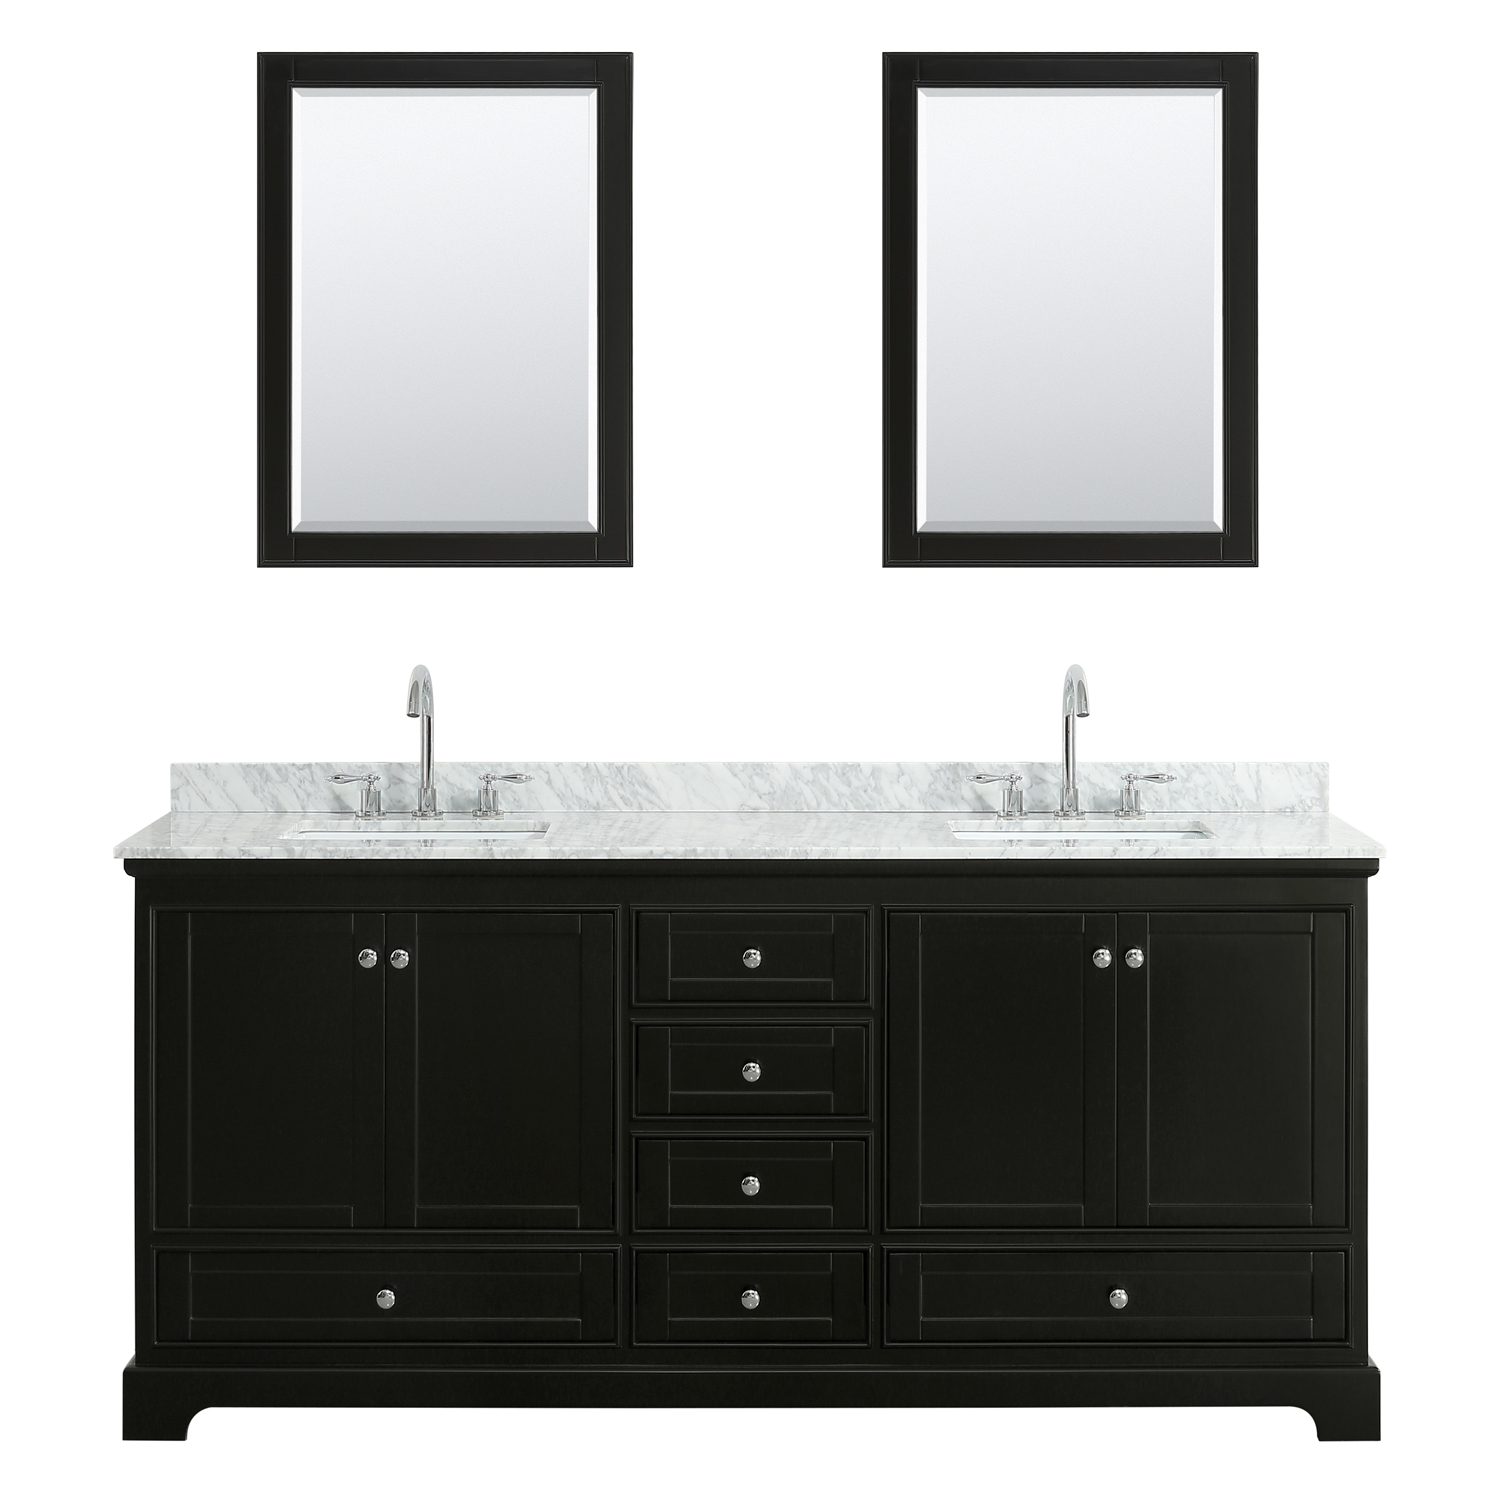 """80"""" Double Bathroom Vanity in White Carrara Marble Countertop with Undermount Porcelain Sinks, Medicine Cabinet, Mirror and Color Options"""